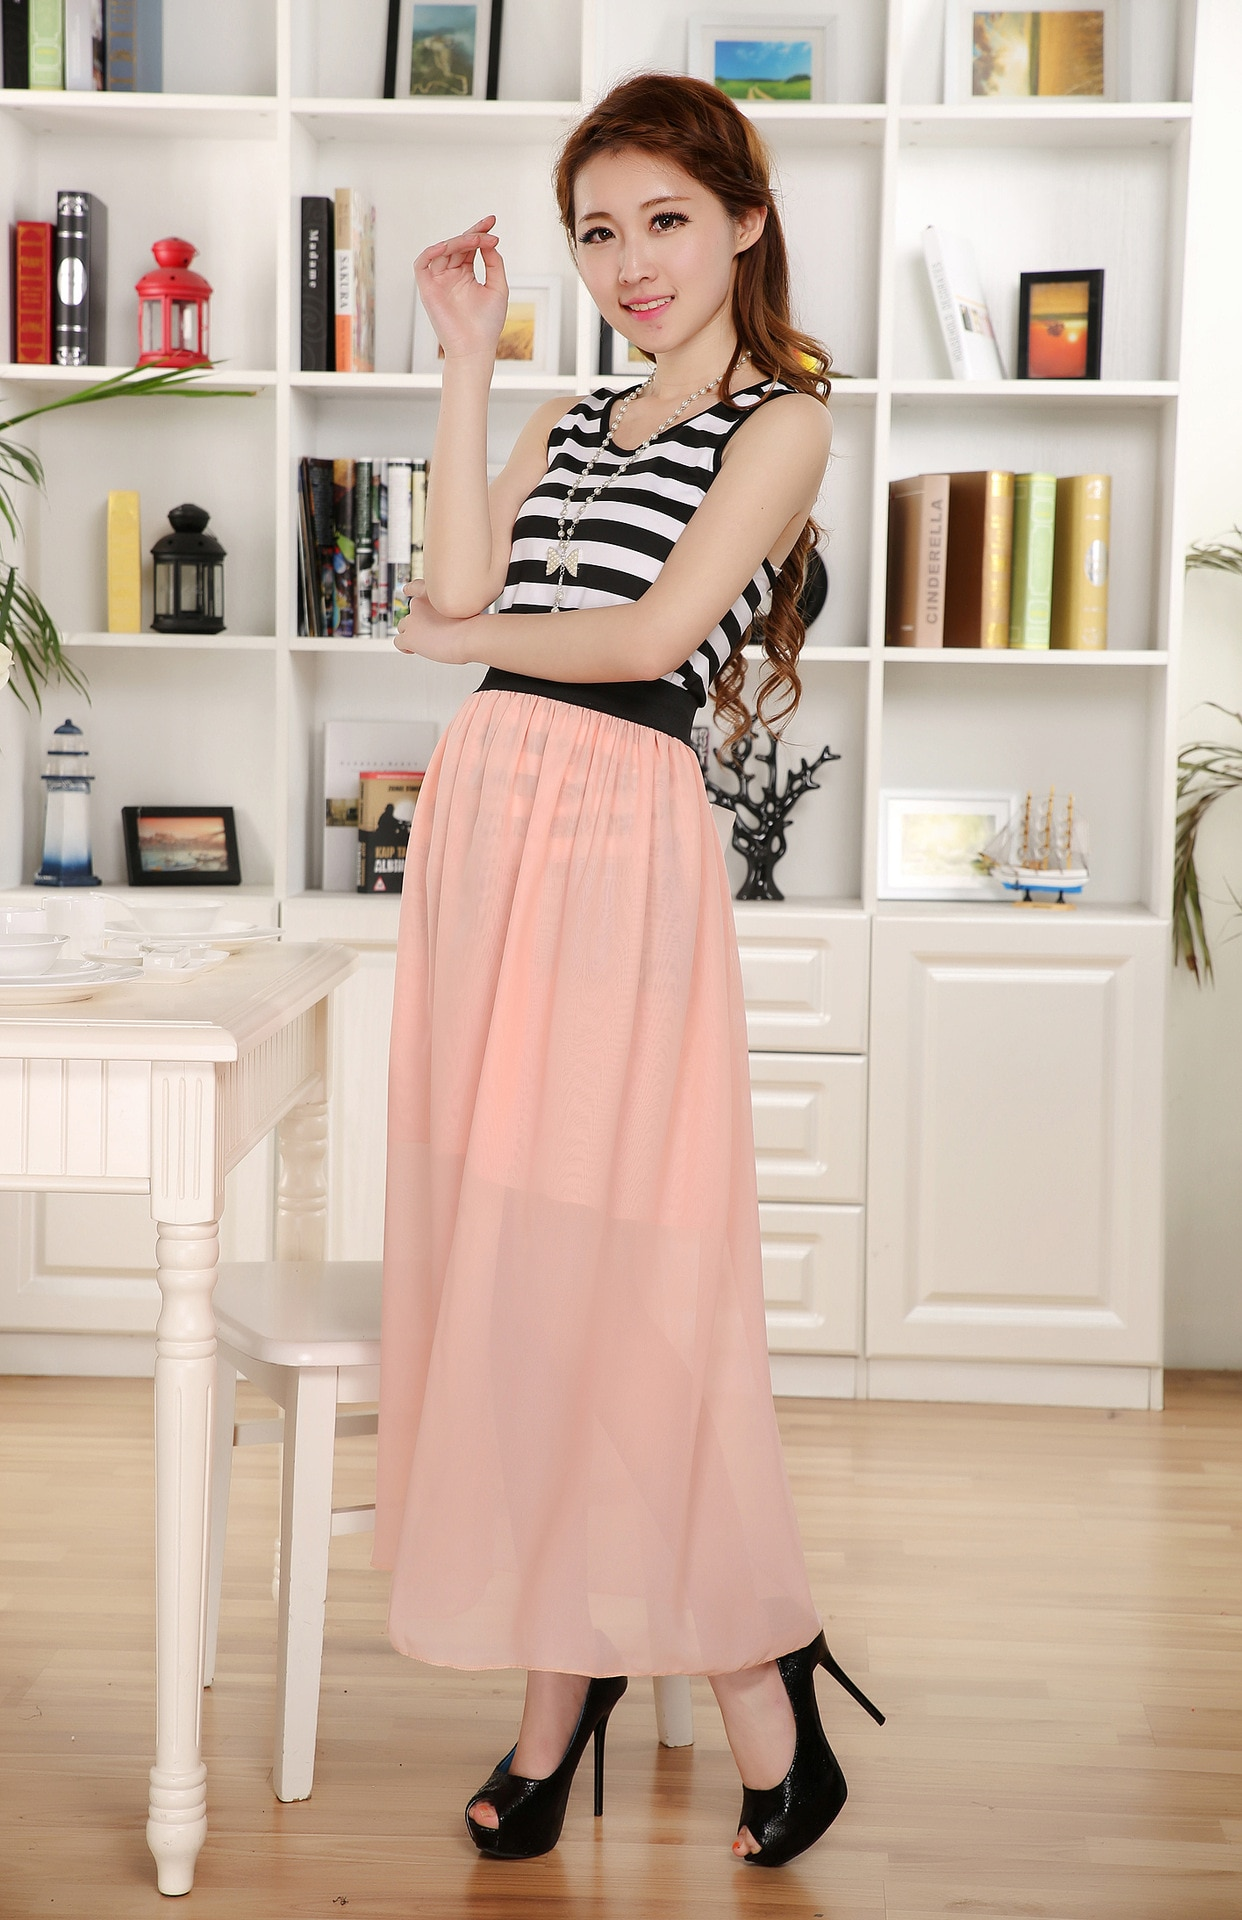 Free Shipping New Brand Designer Hot Sale Candy Colors High Quality Sexy Long Chiffon Skirt Pink Blue Black Red White Green C003 3